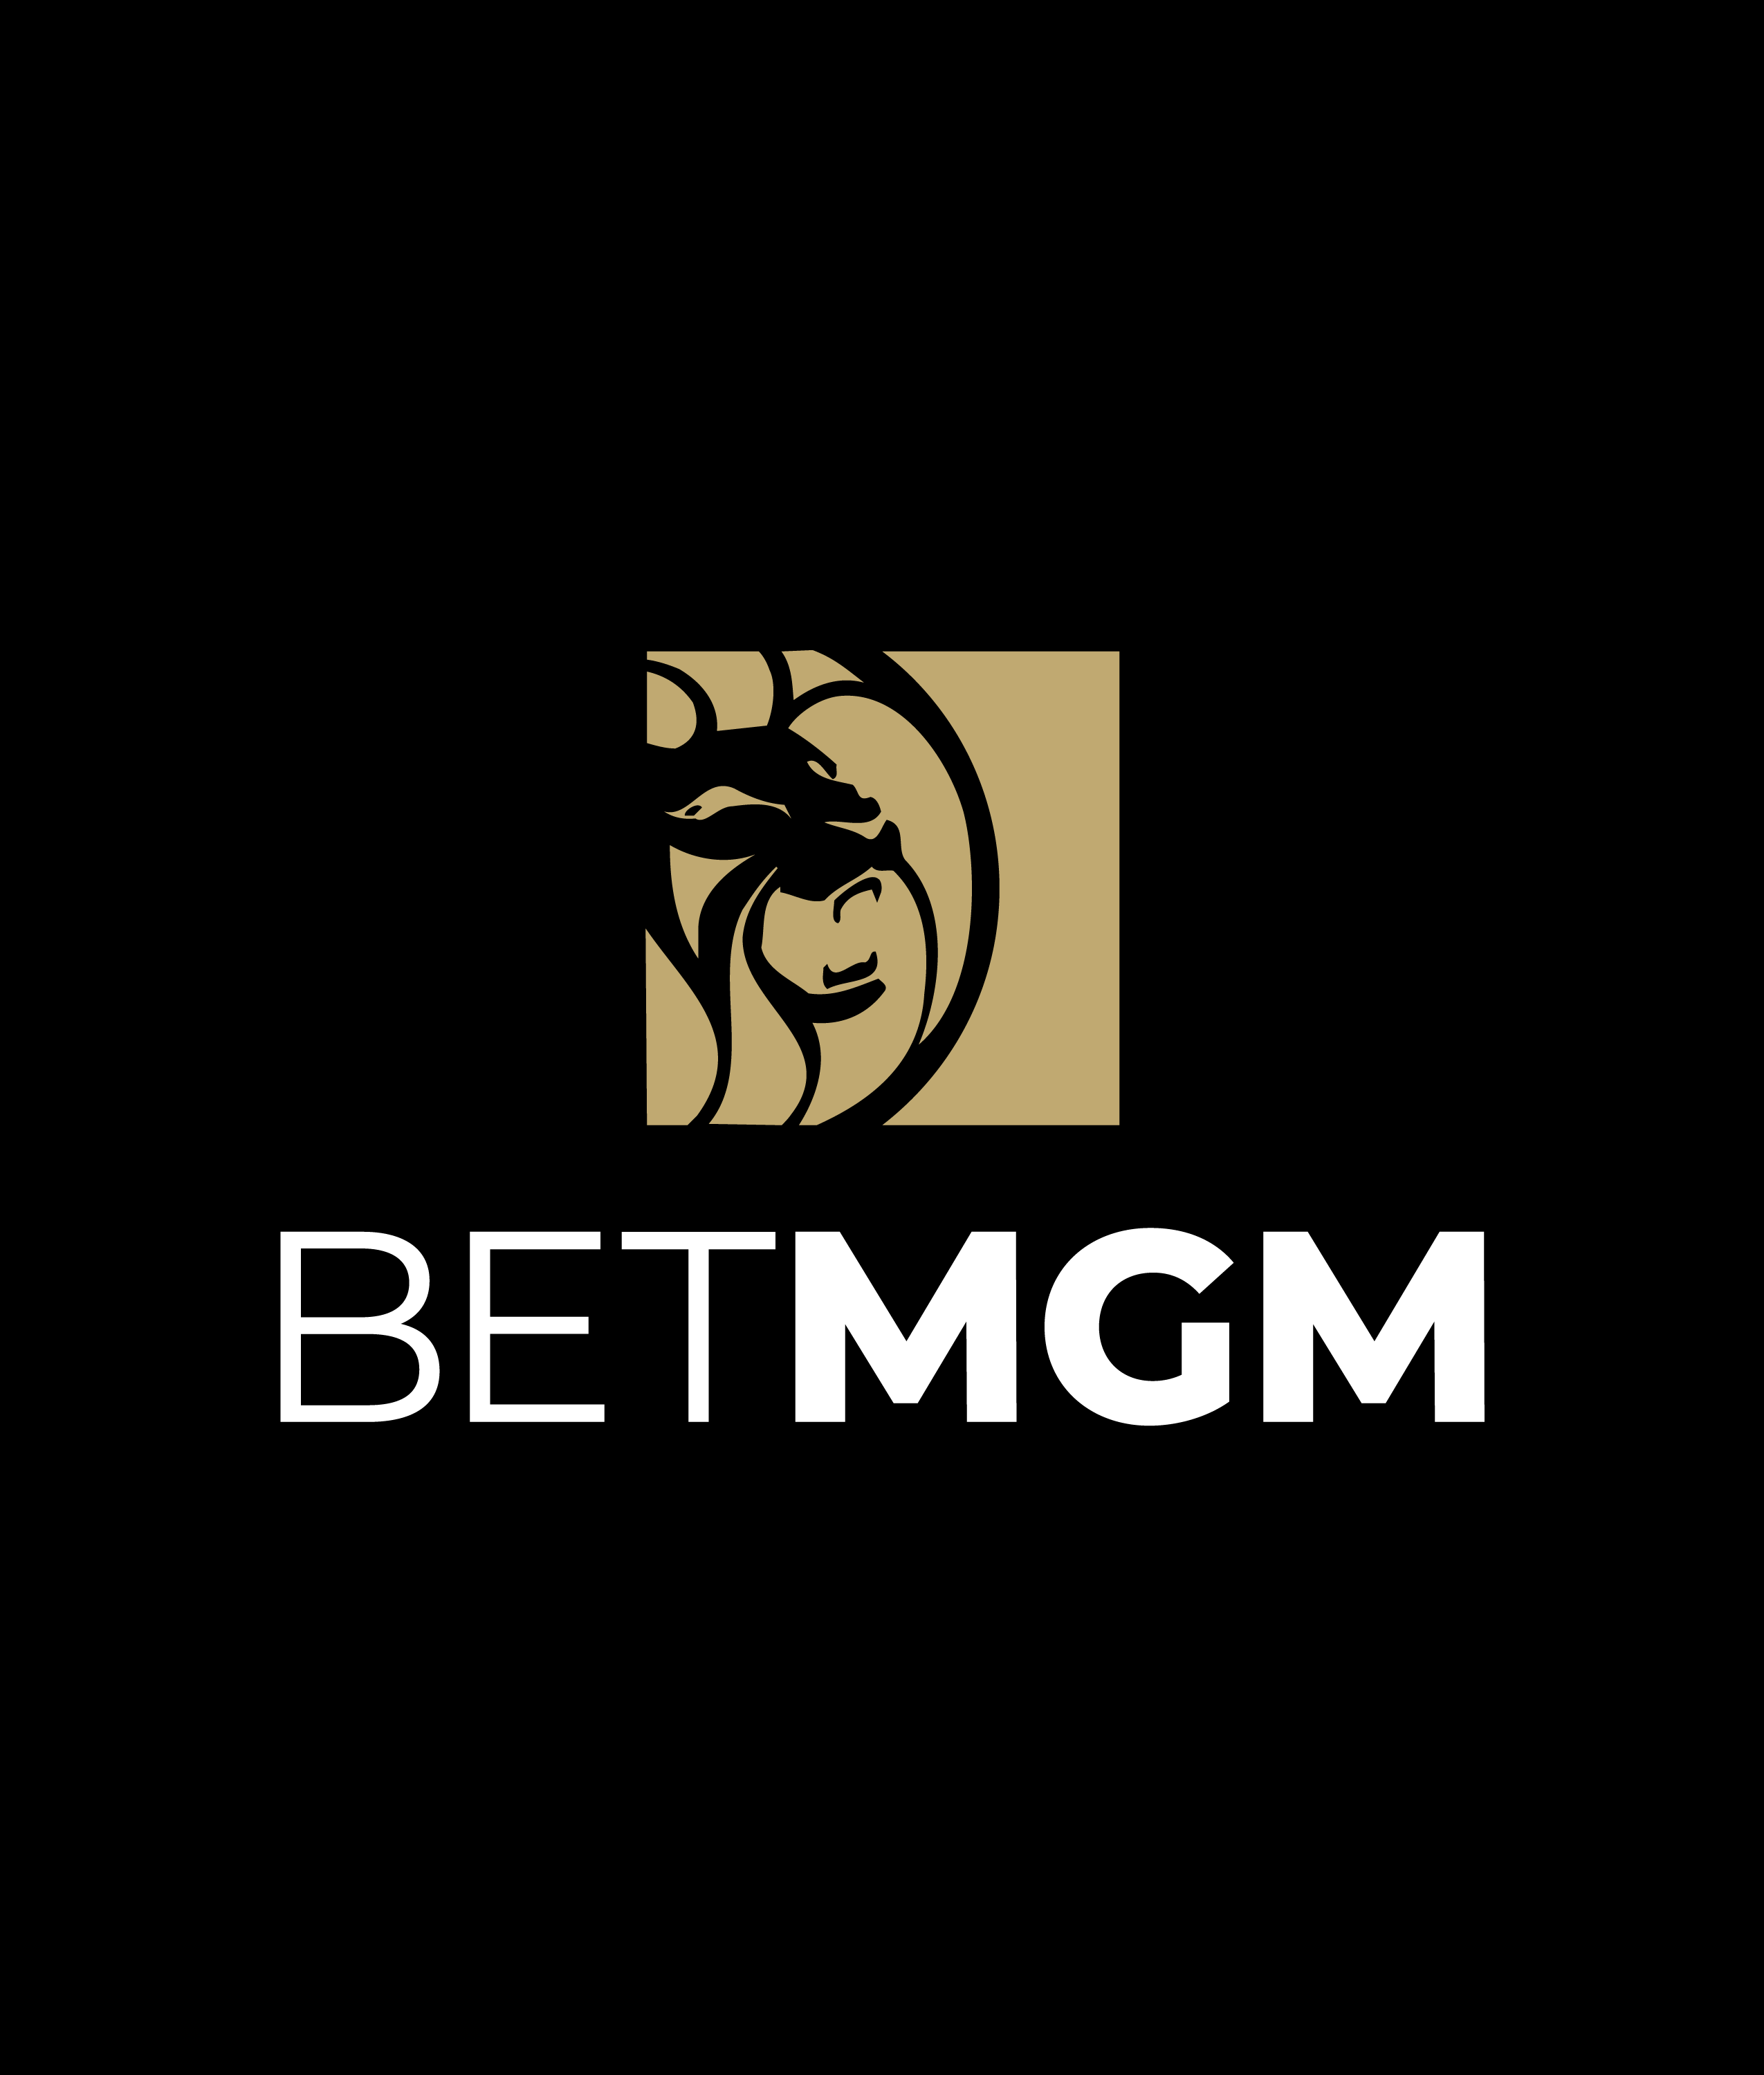 Mgm online betting uk sports betting tips